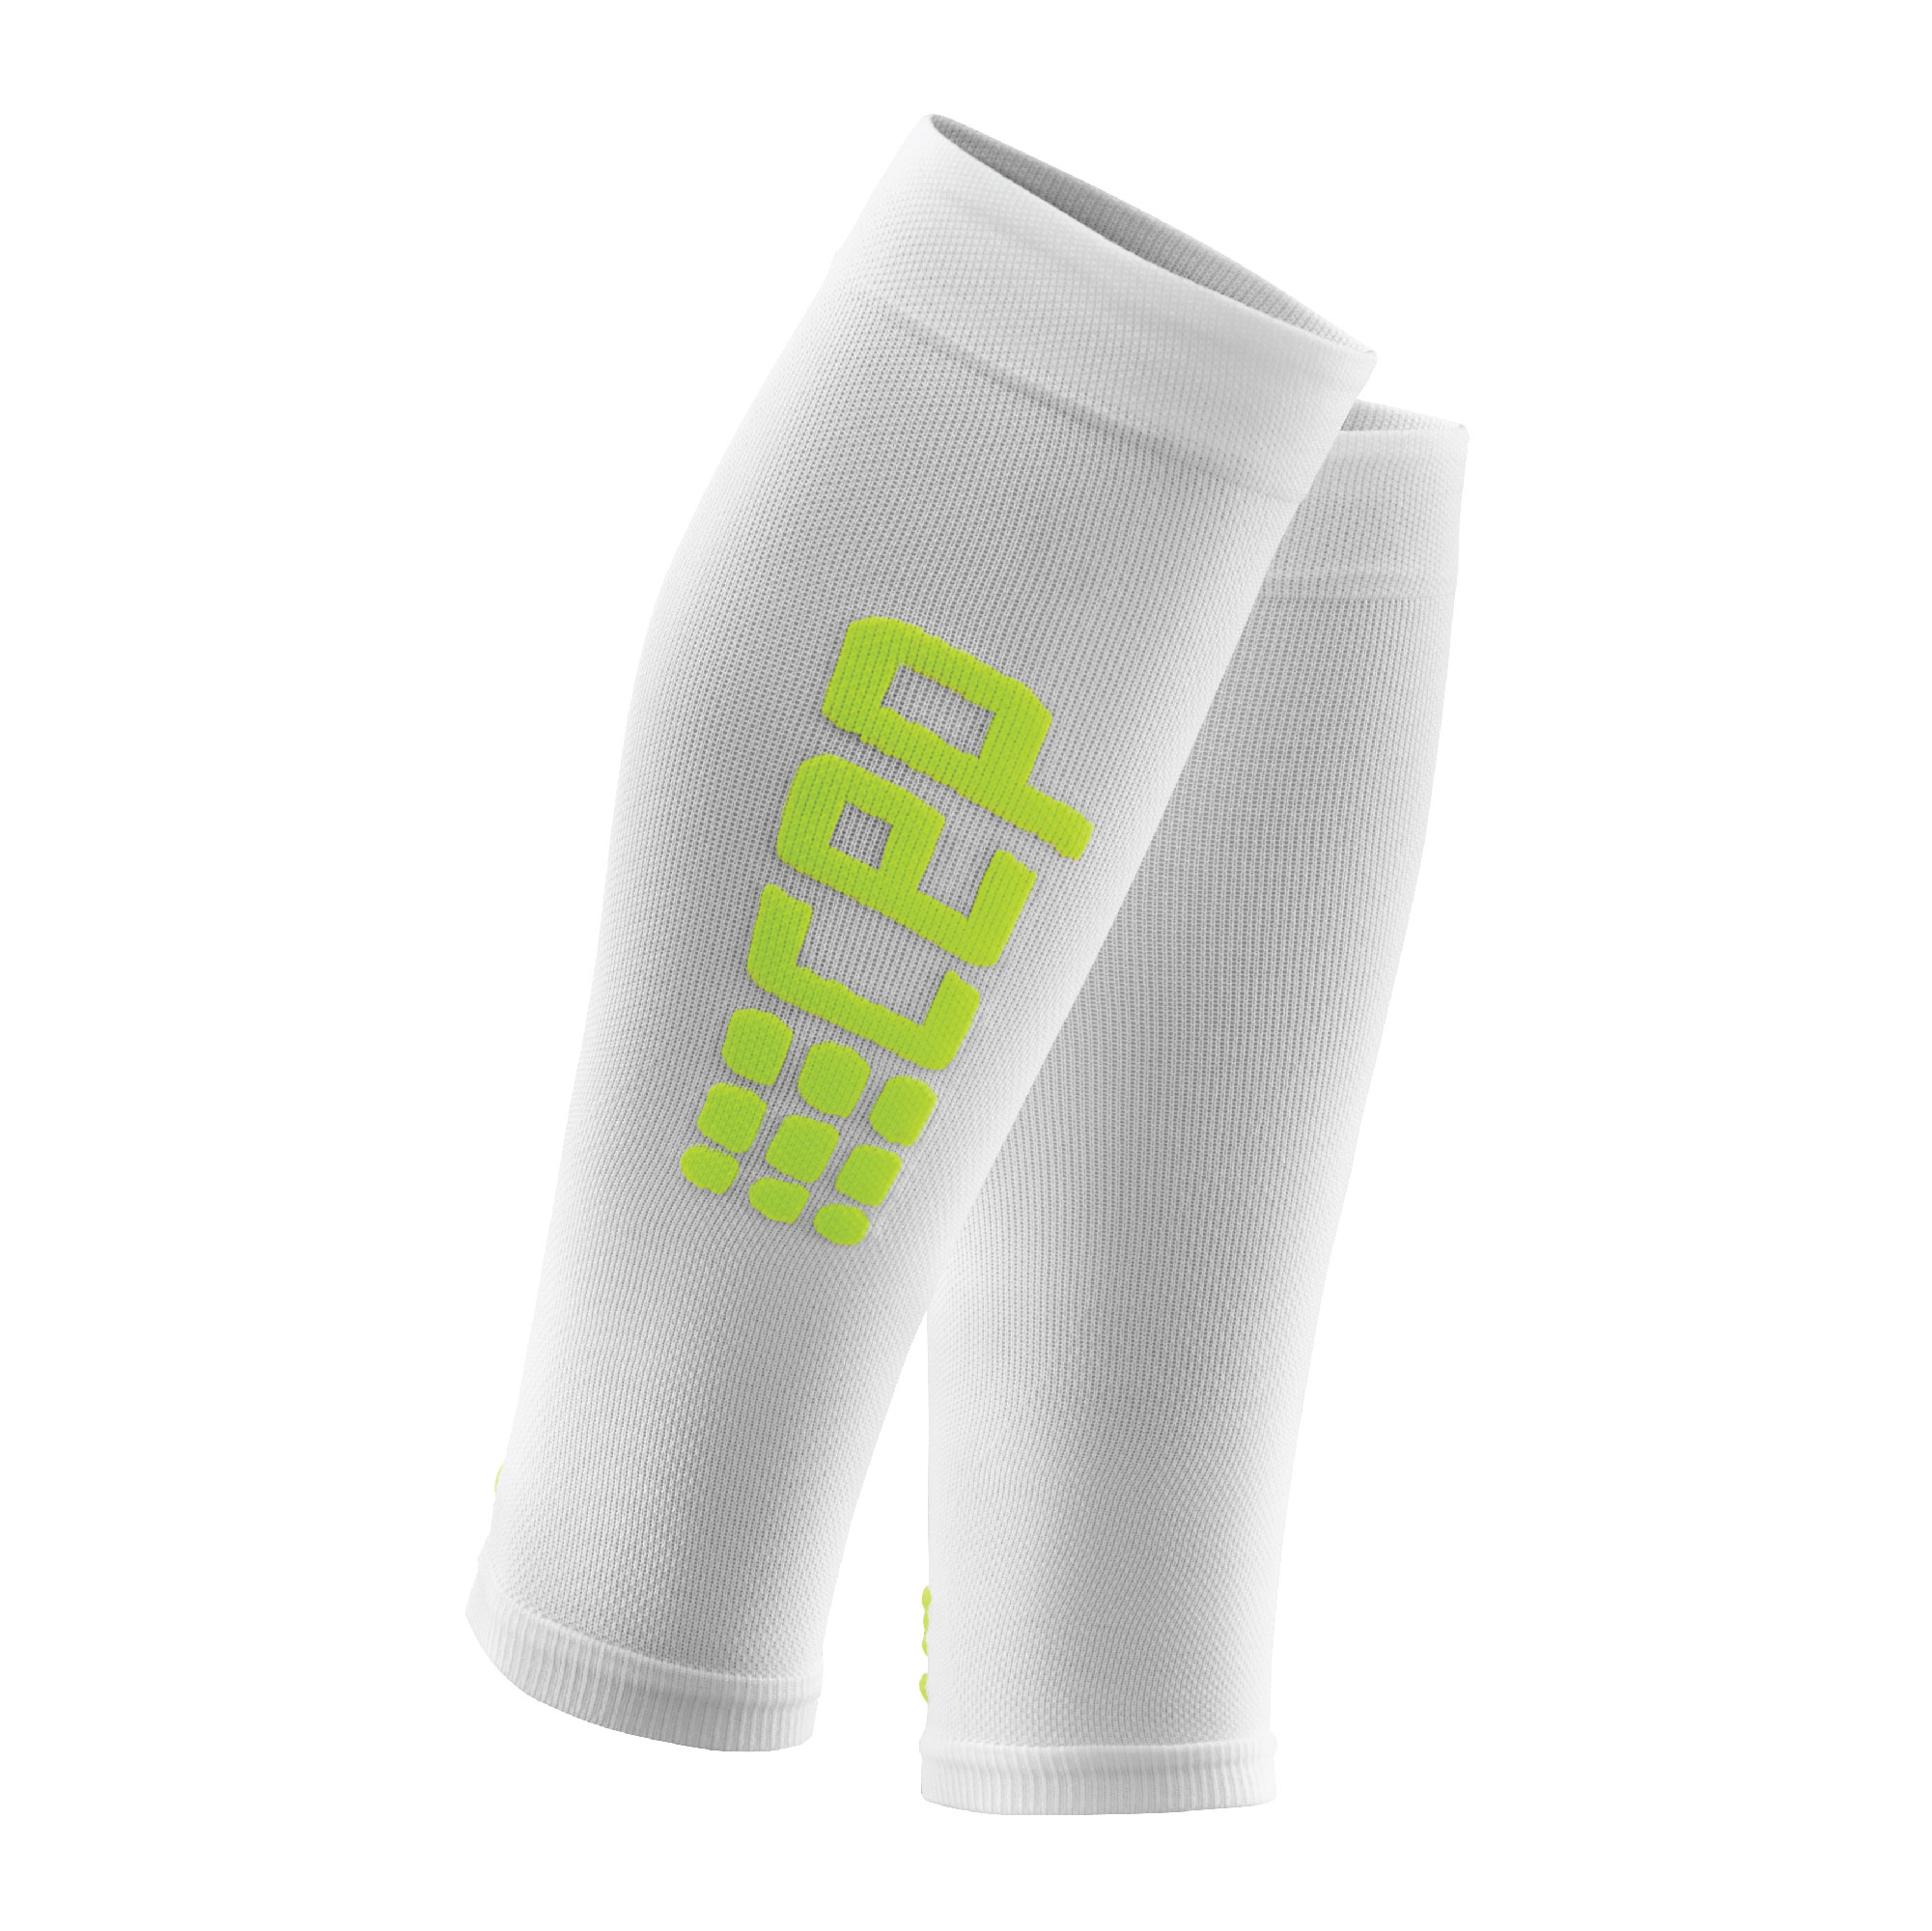 ULTRALIGHT CALF SLEEVES | MEN